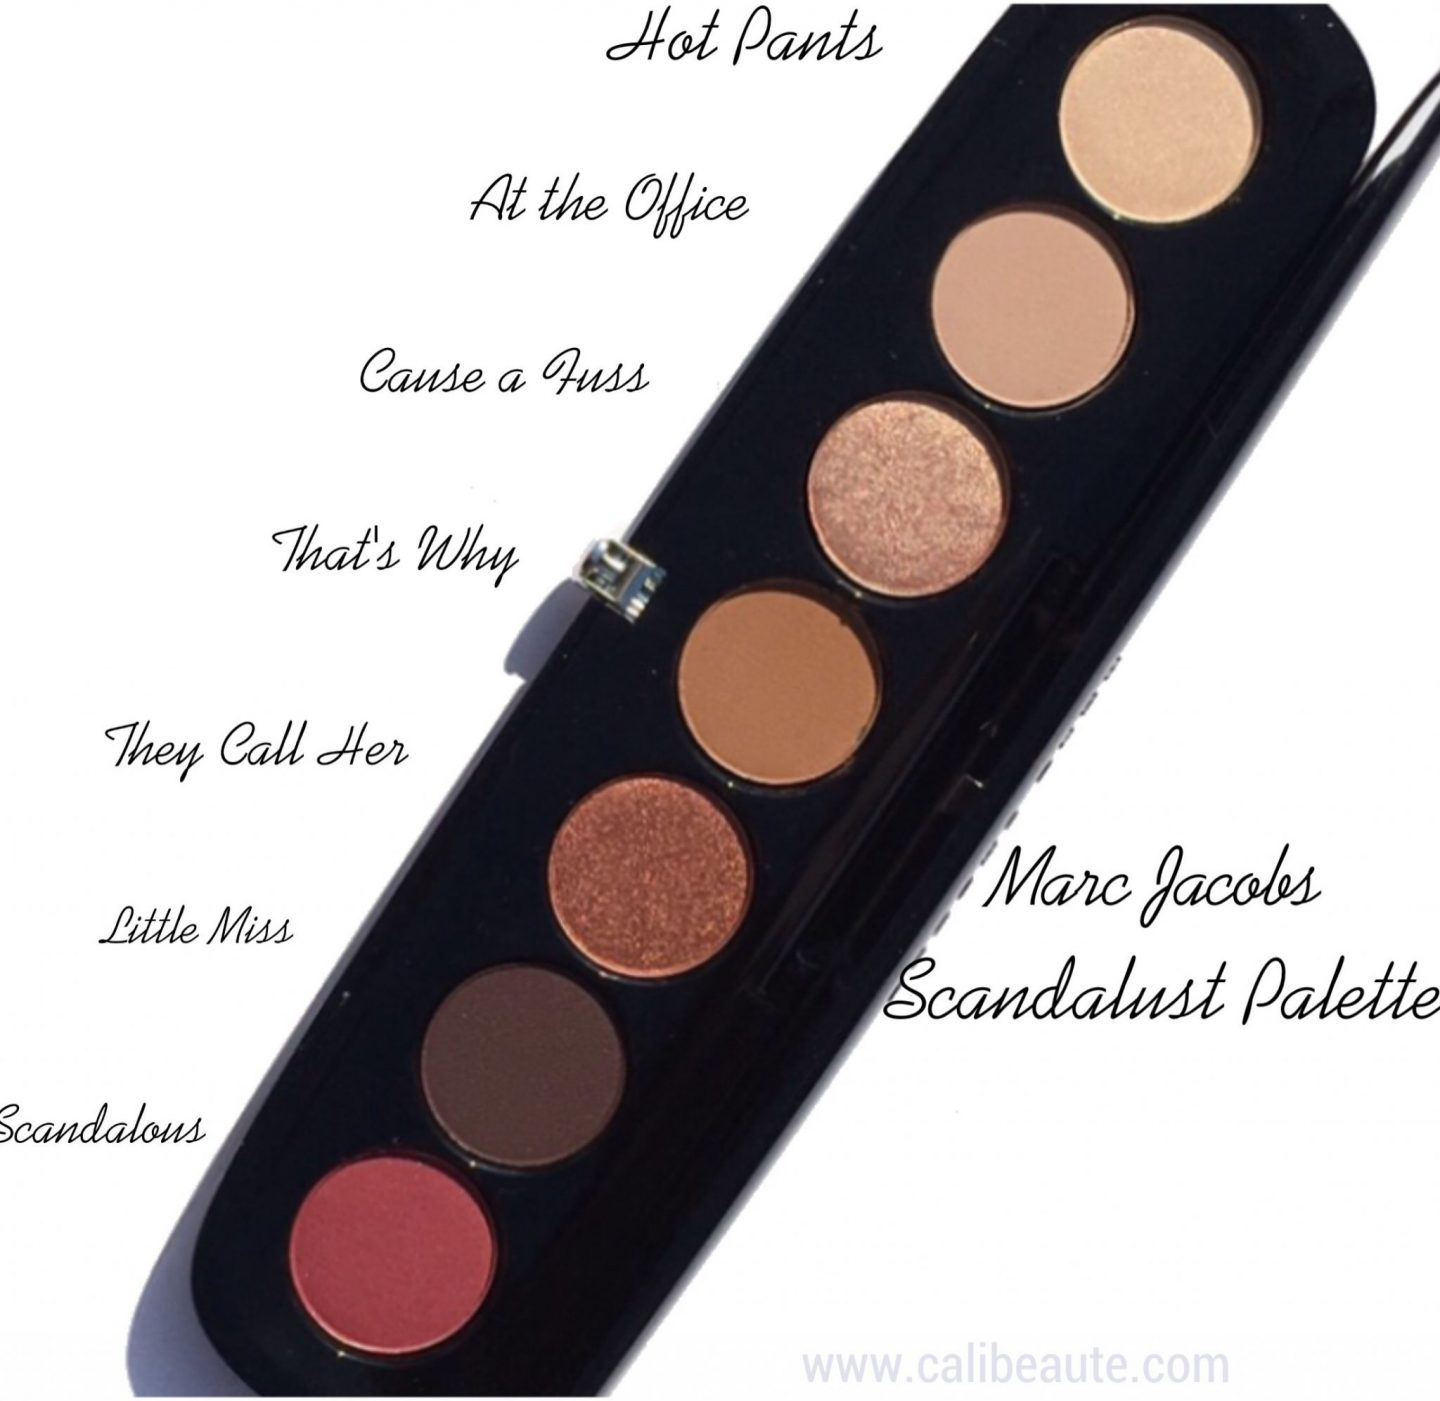 Marc Jacobs Scandalust Palette Review and Swatches |www.calibeaute.com